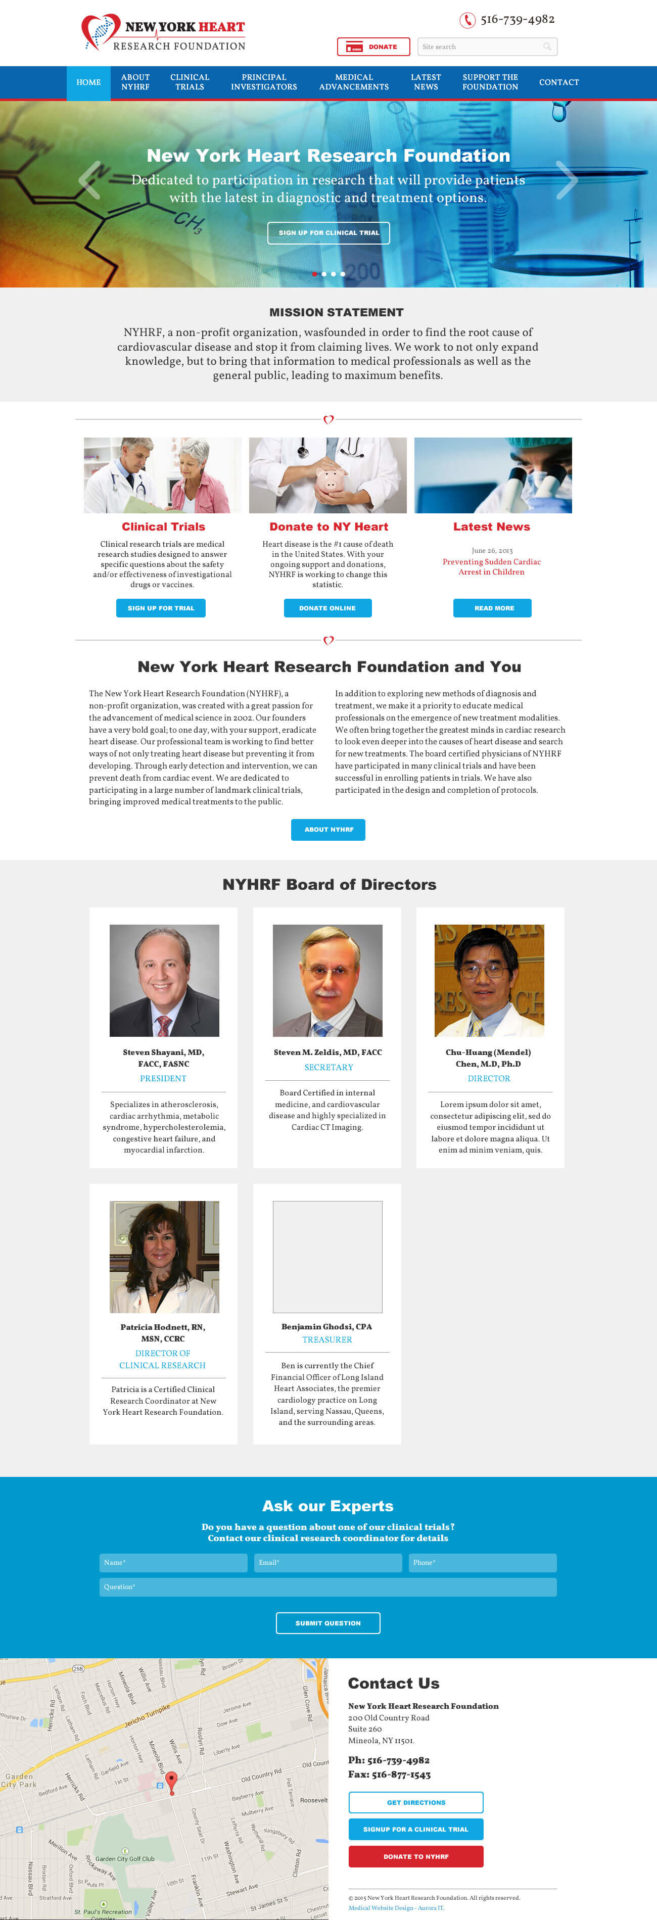 Newyork Heart Research Foundation